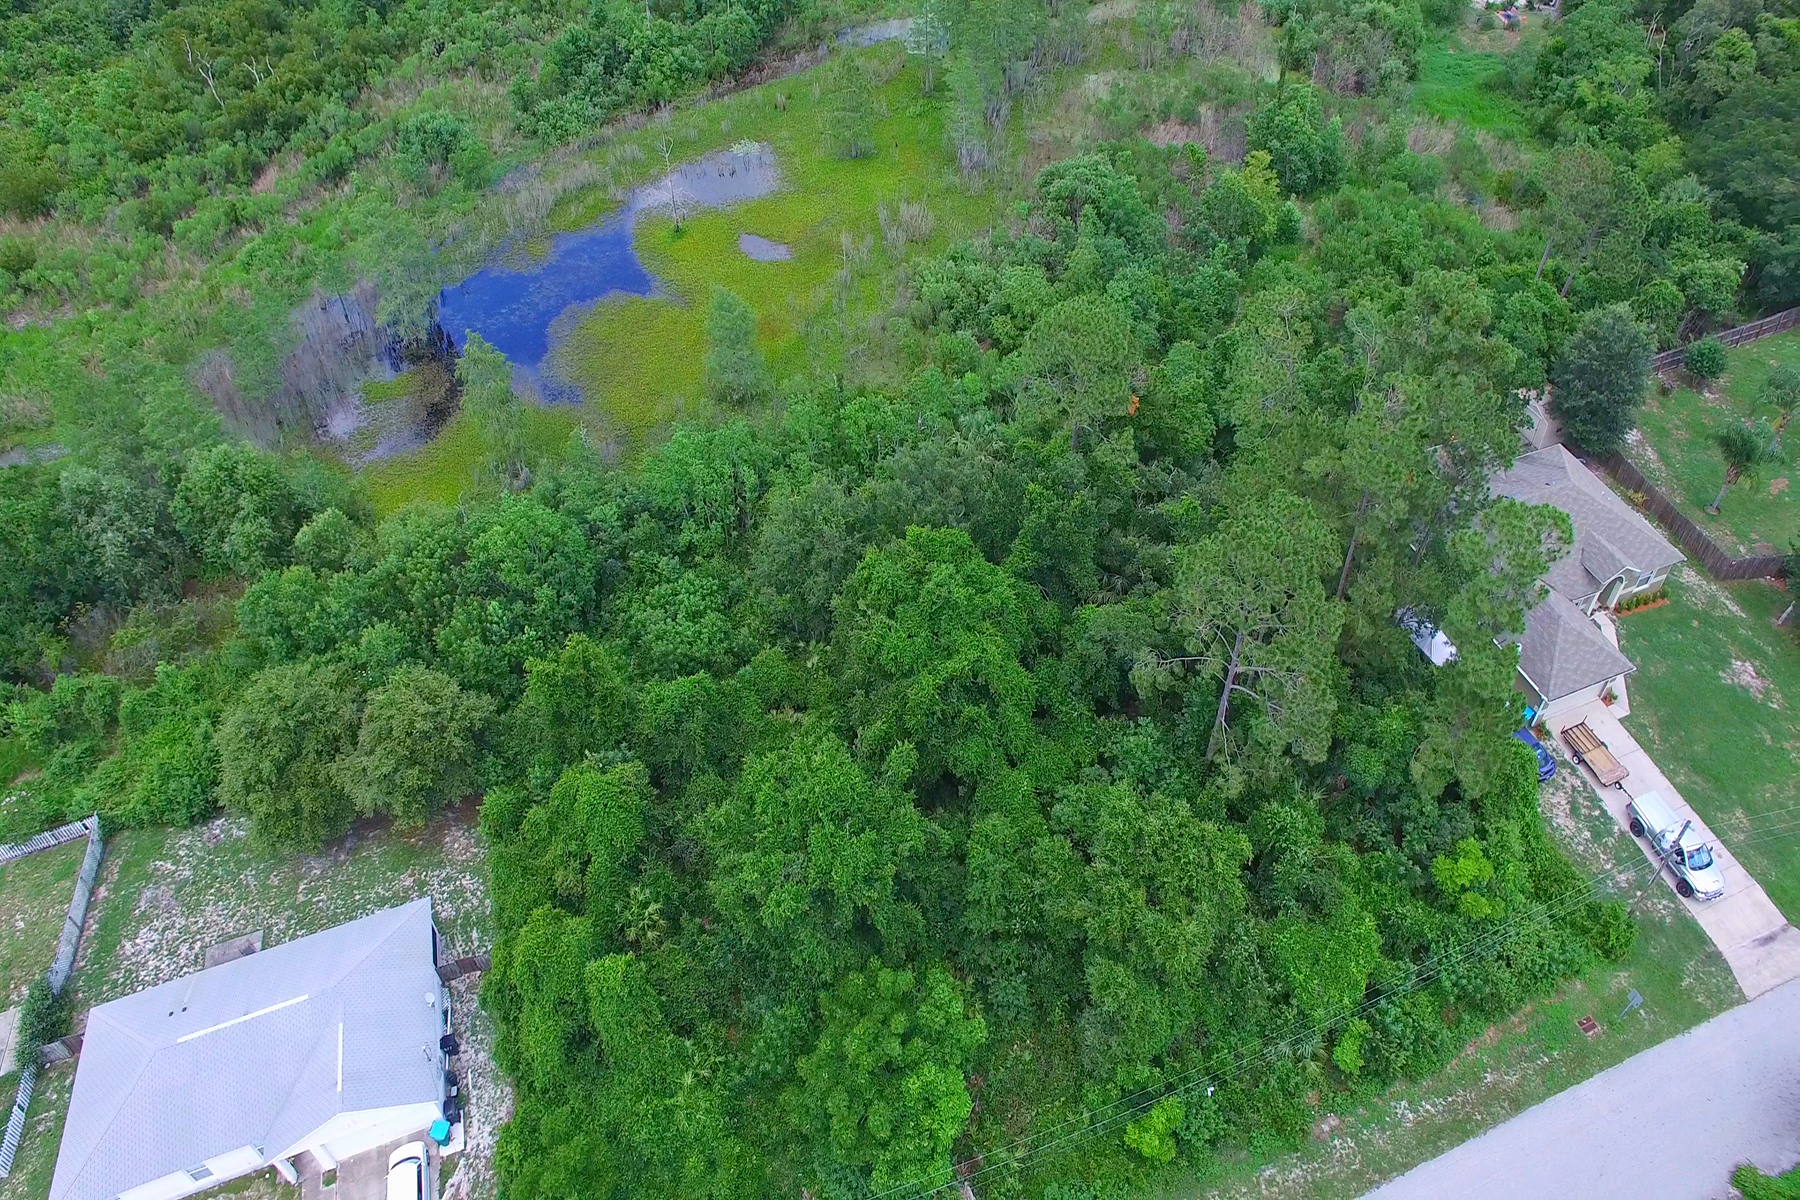 Land for Sale at DELTONA 561 Leland Dr 7, Deltona, Florida 32725 United States